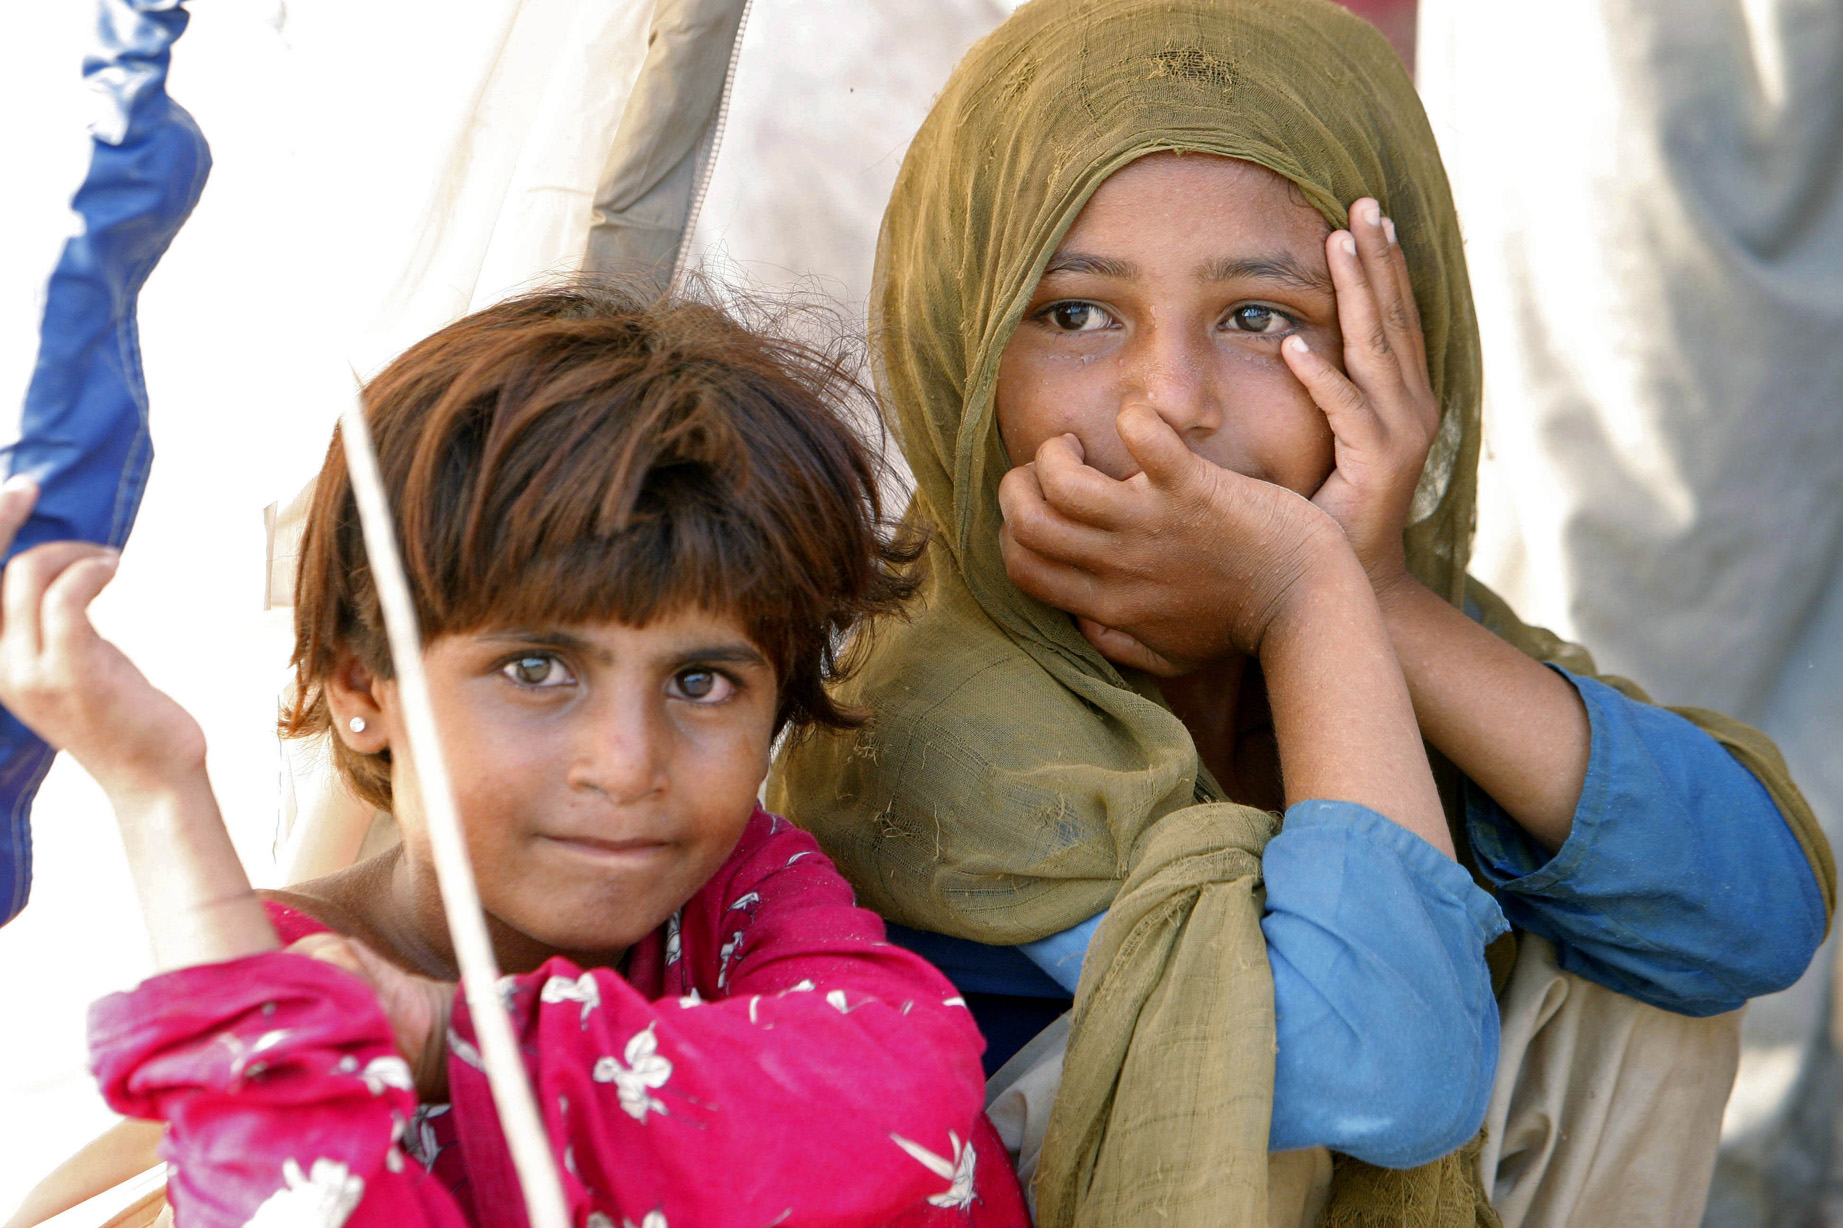 A portrait of two young girls in Sultan Colony, an encampment of people displaced by Pakistan's potent monsoon floods, in Punjab Province, near the city of Multan